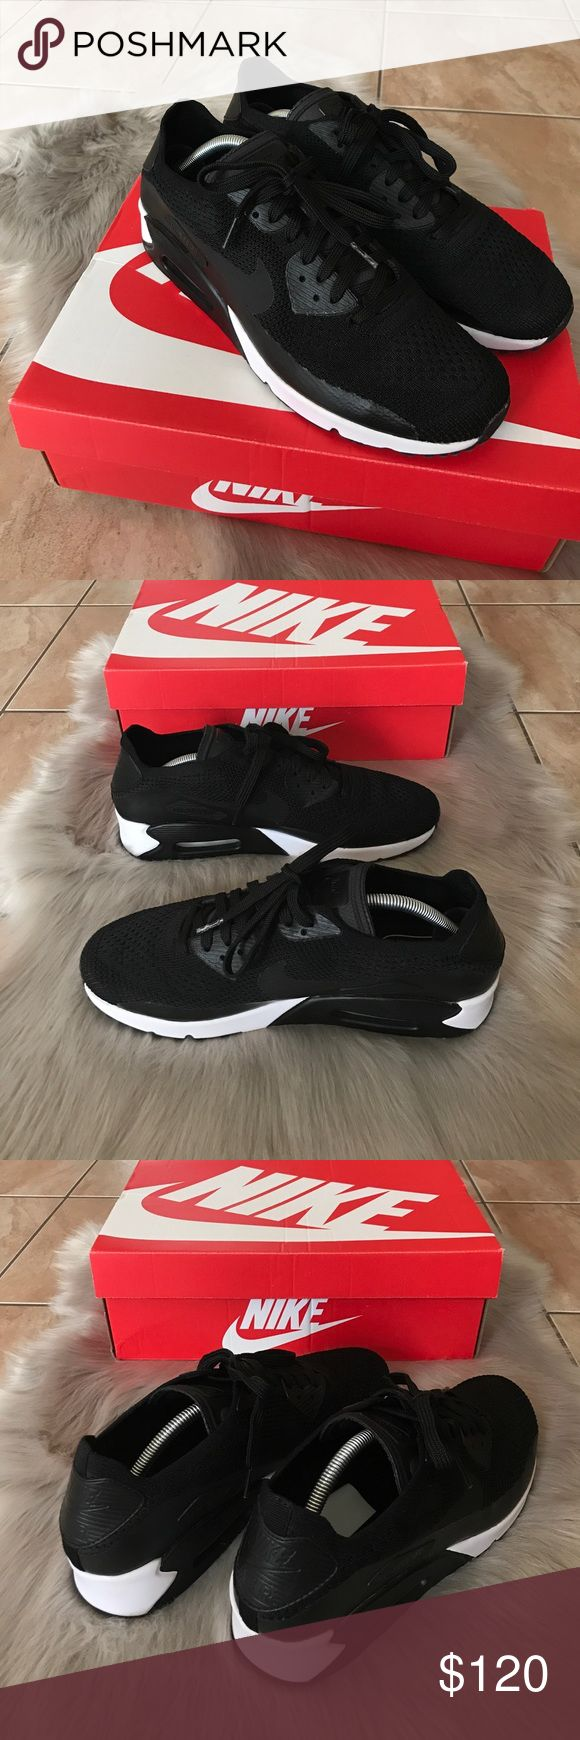 Nike Air Max 90 Ultra 2.0 Flyknit Nike Air Max 90 Ultra 2.0 Flyknit   - Almost like new, lightly worn once!  -Size 10 -Will double box upon ship!  -Ship from Los Angeles, CA.  -Ship same or next business day! - No pricing discussions on comments below, ONLY submit offer.   Tags: Supreme Box Logo Shirt Hoodie Bape Chanel Louis Vuitton Vintage Tee Palace LV wallet Card Wallet Style Accessories Gucci Snake Belt Travel Passport Common Projects Goyard Duffle Bag Backpack Jordan Nike Yeezy Nike…